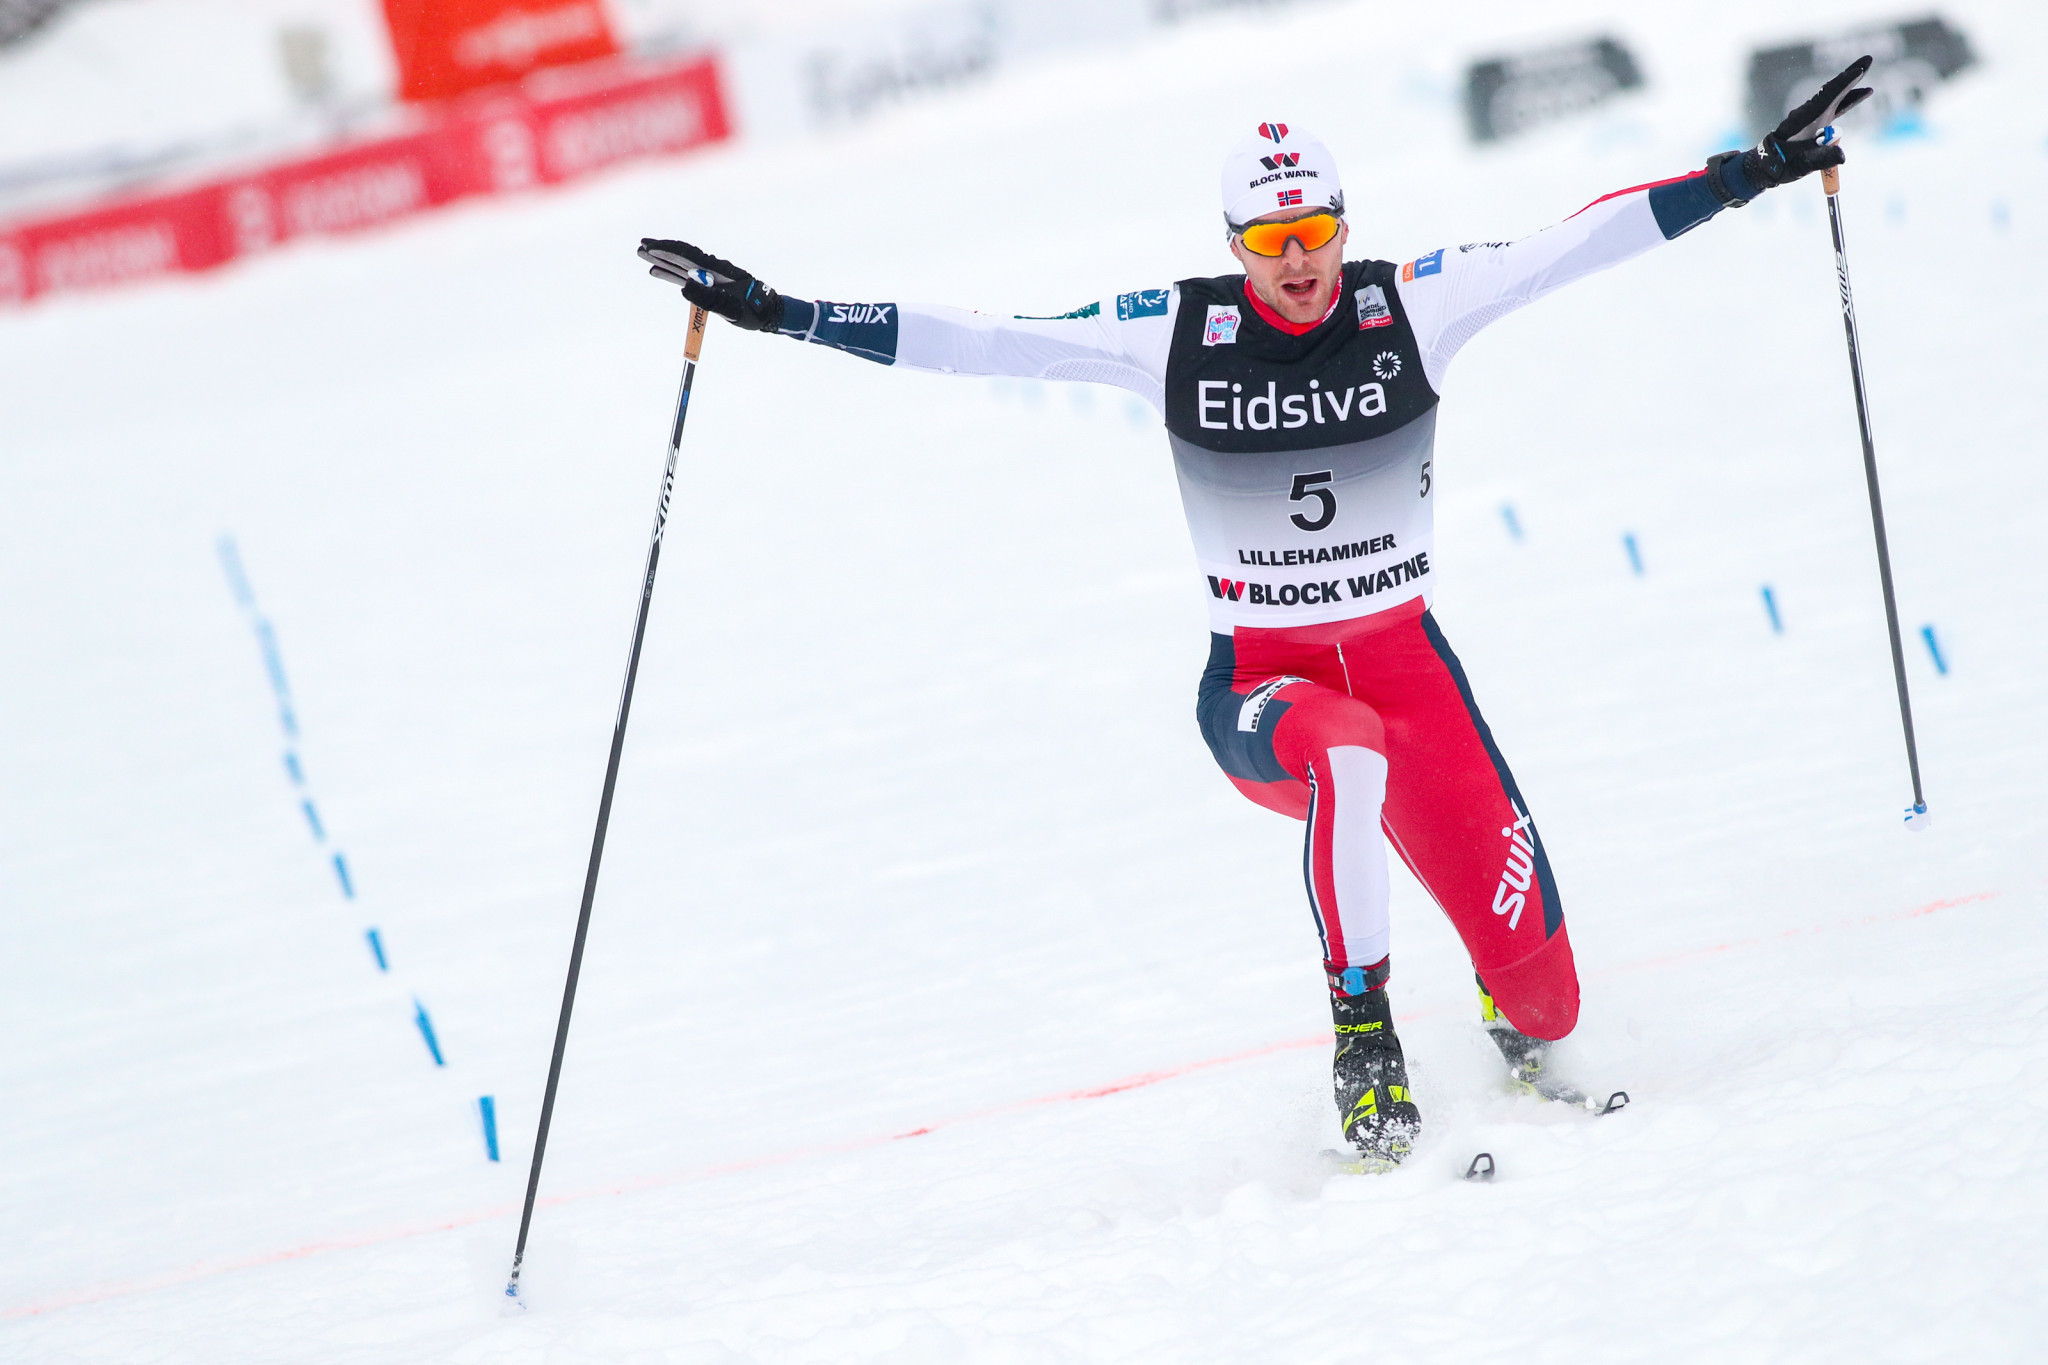 Jørgen Graabak will be trying to overcome fellow Norwegian Jarl Magnus Riiber at the FIS Nordic Combined World Cup event in Ramsau am Dachstein ©Getty Images